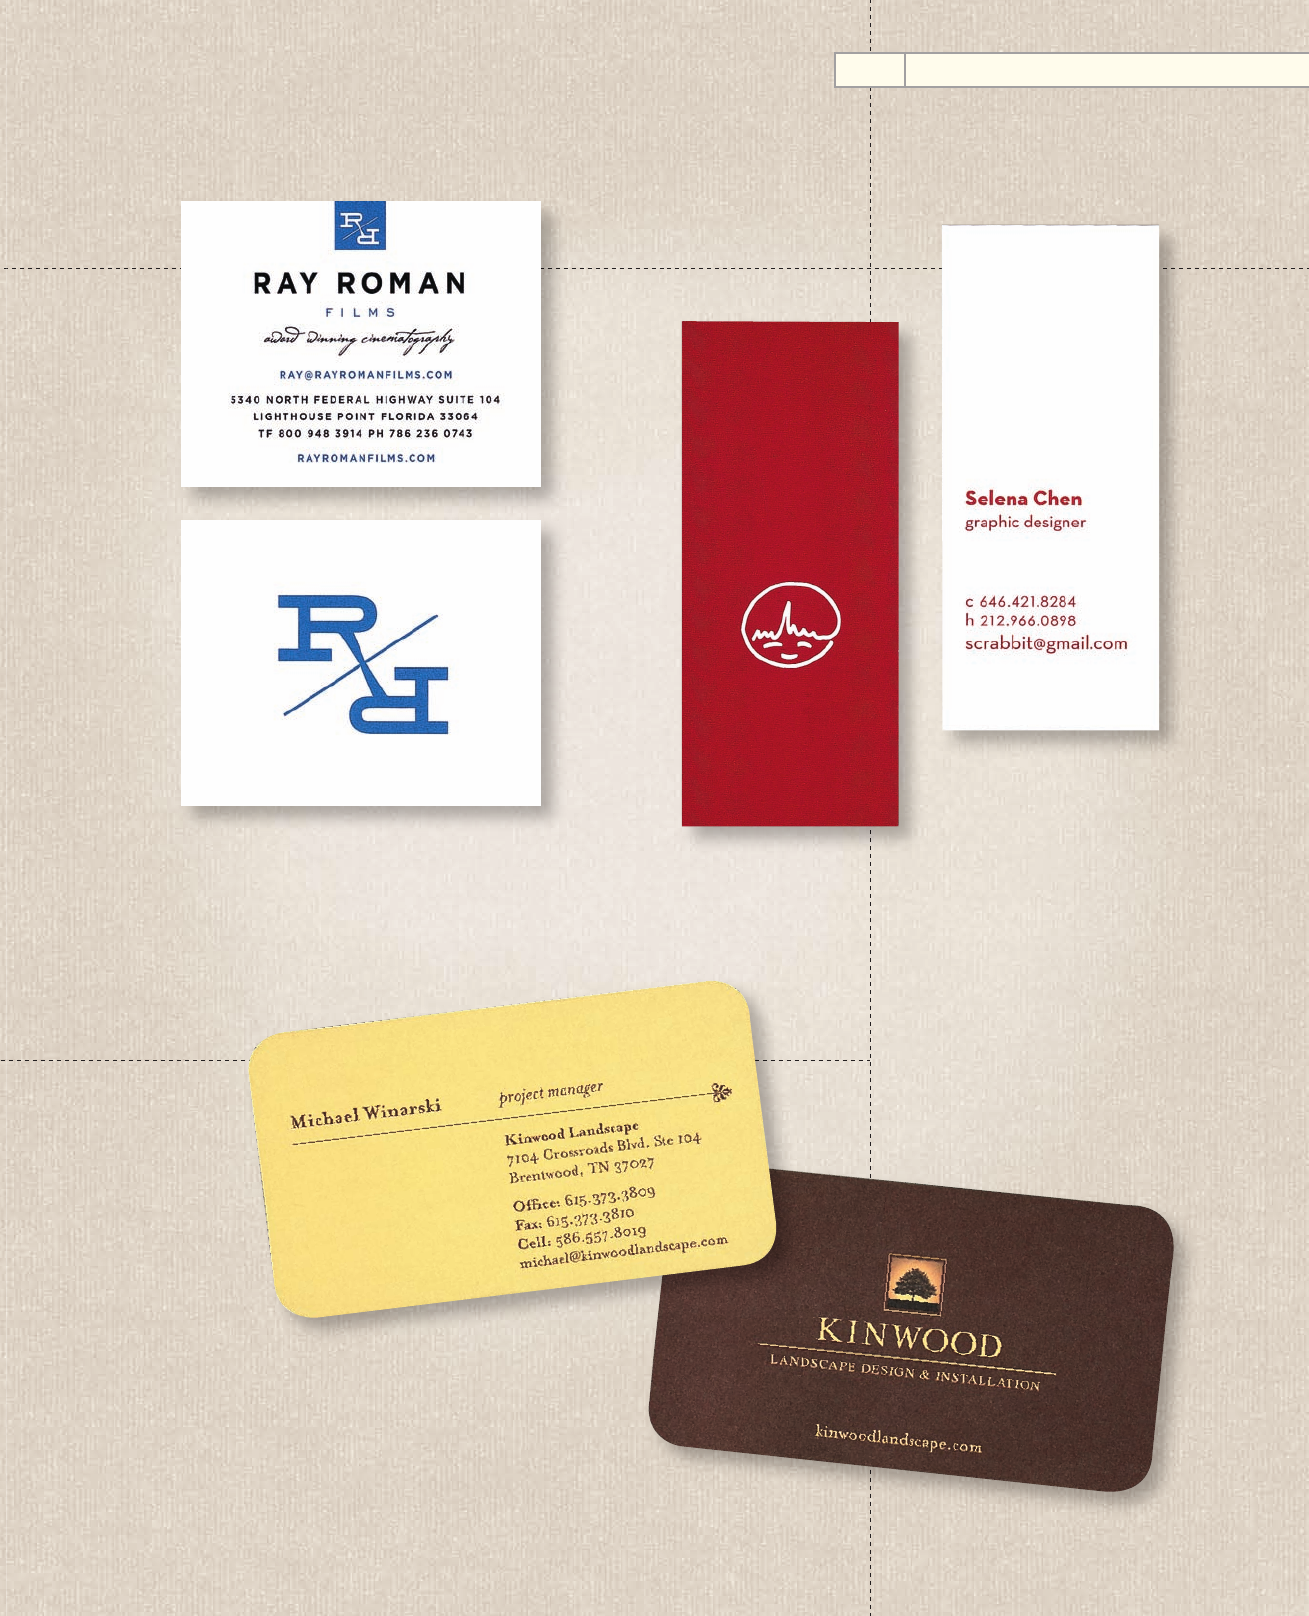 MINIMAL DESIGNIOUS (2/9) - The Best of Business Card Design